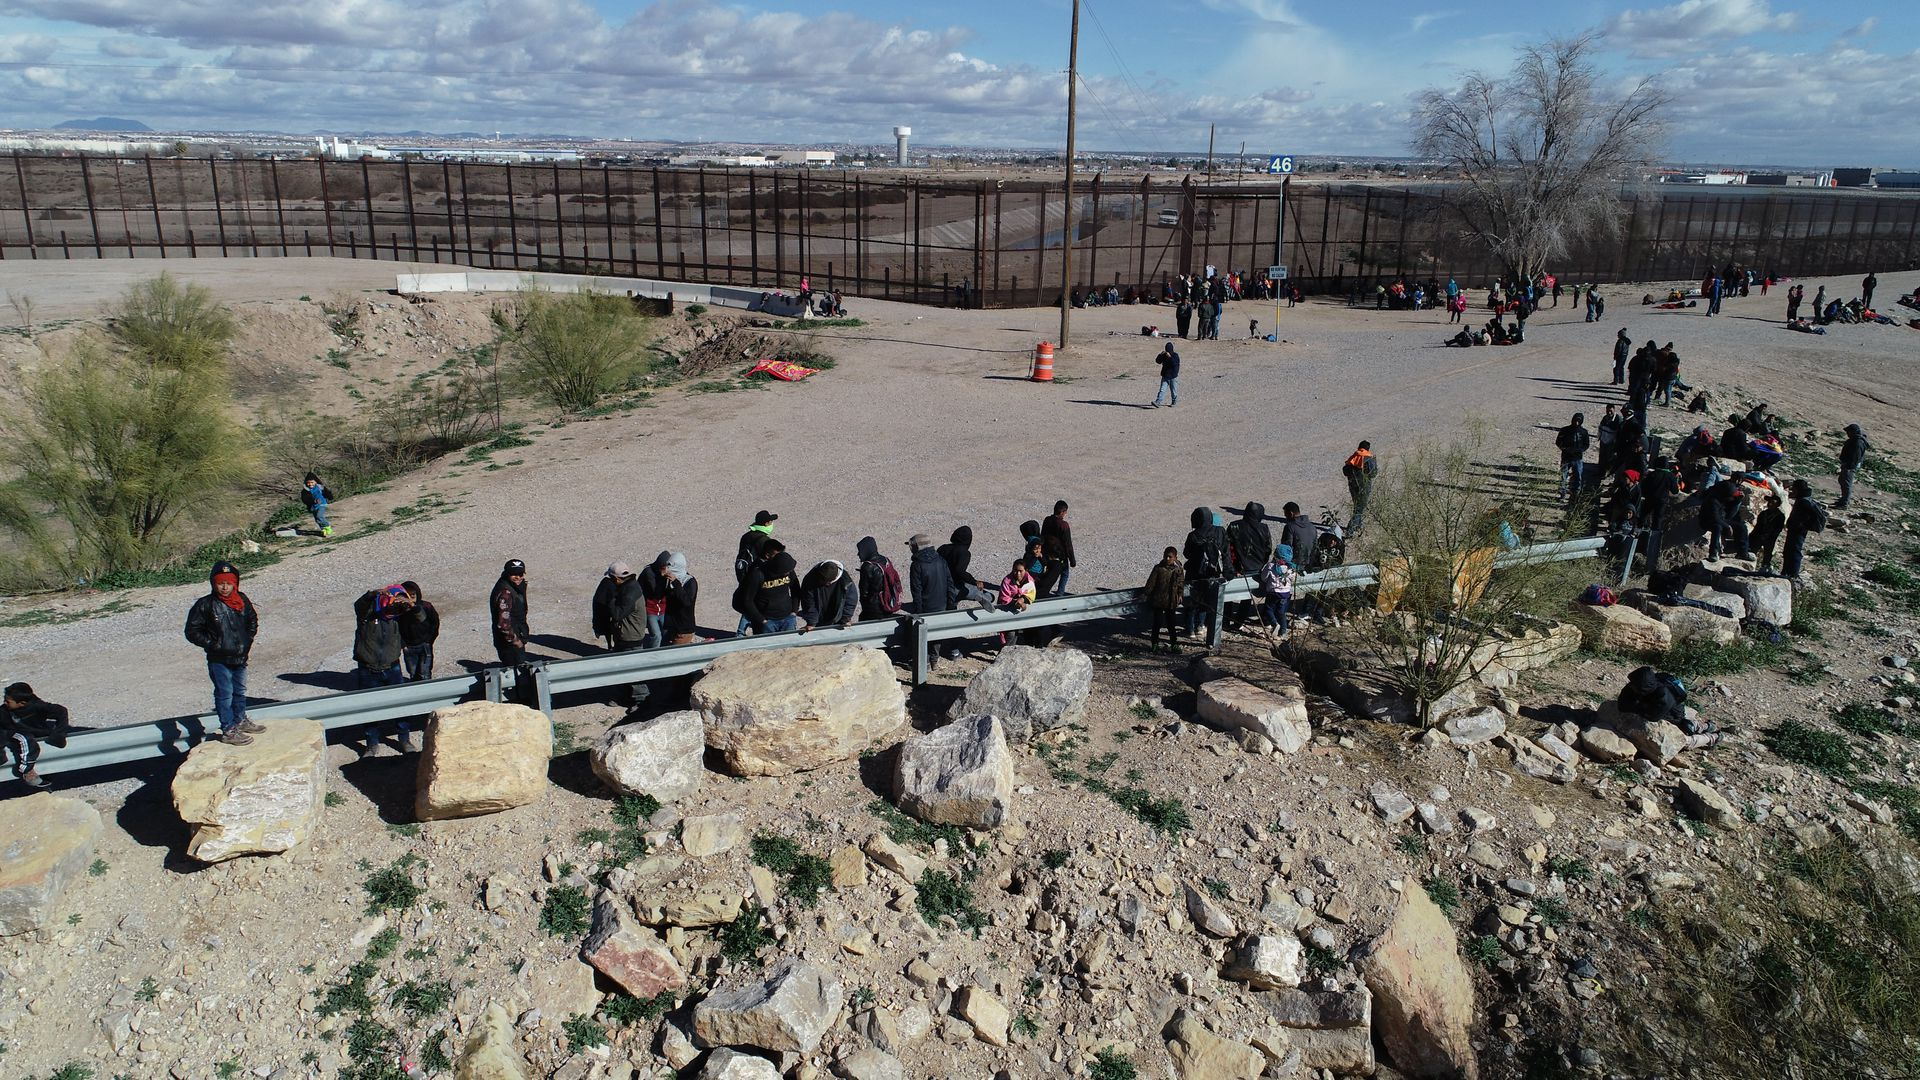 Migrants waiting near the U.S. border